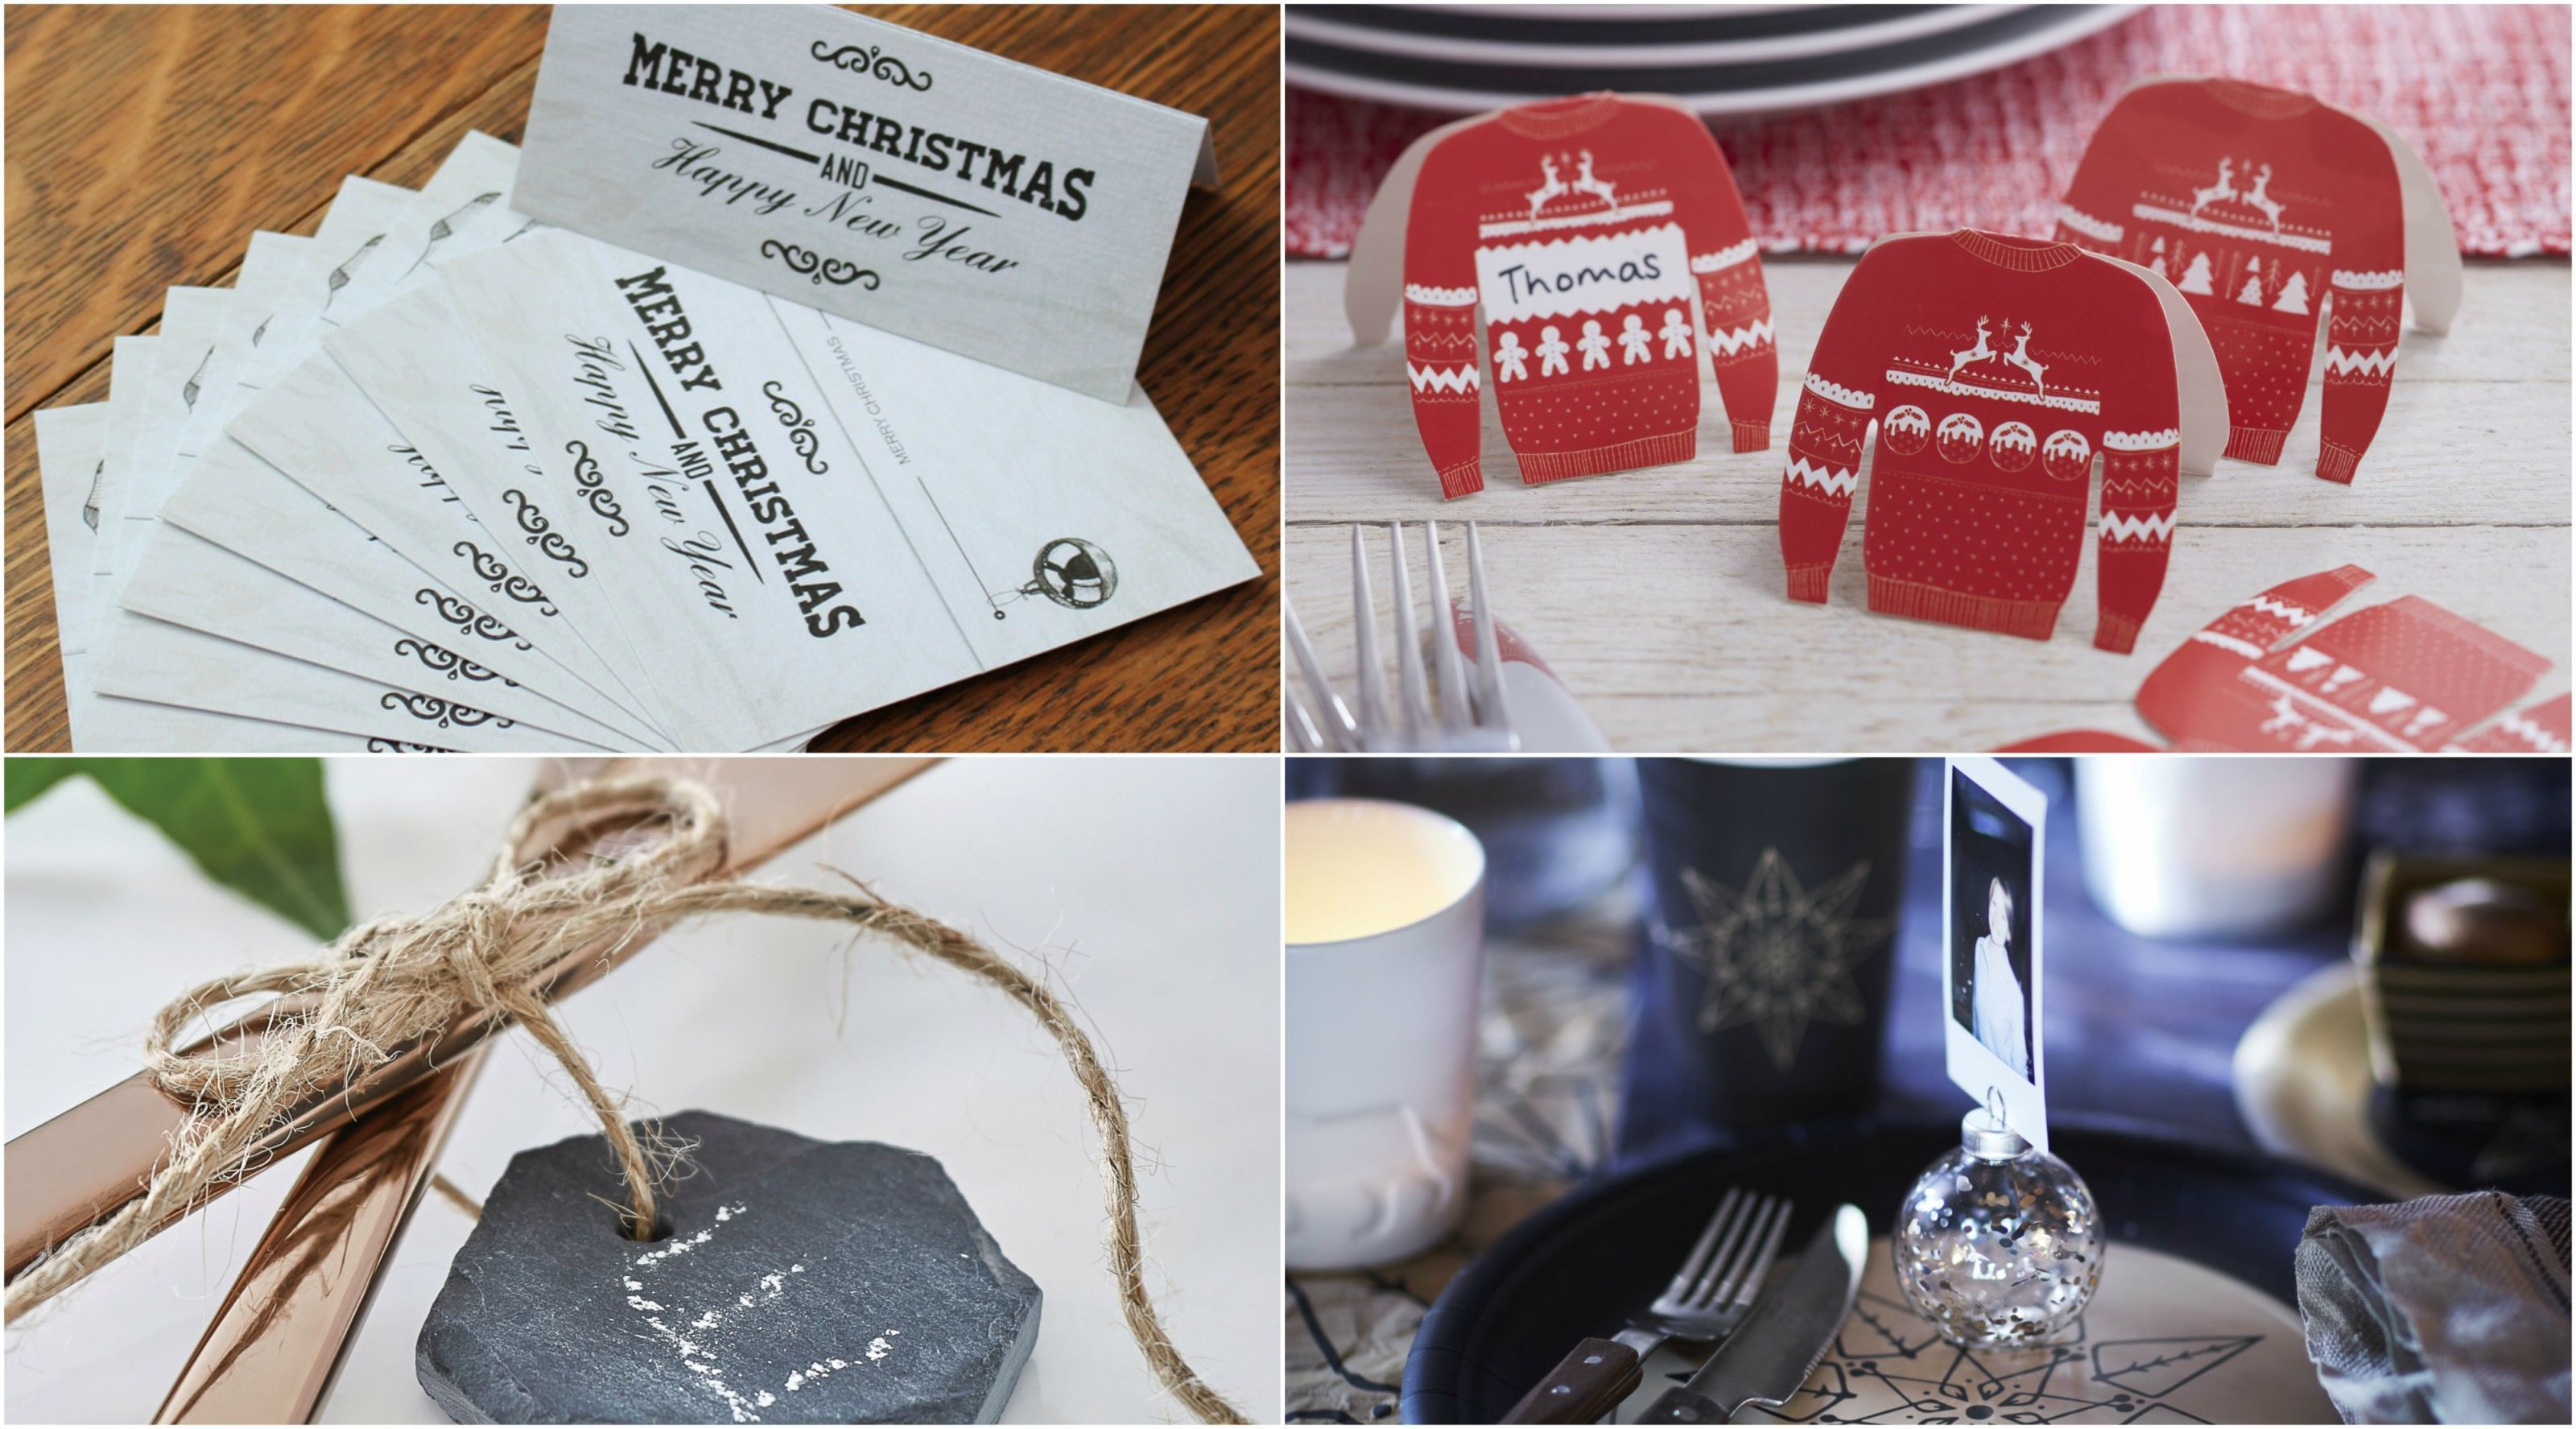 Christmas table place setting ideas gallery & 8 of the best Christmas table place settings